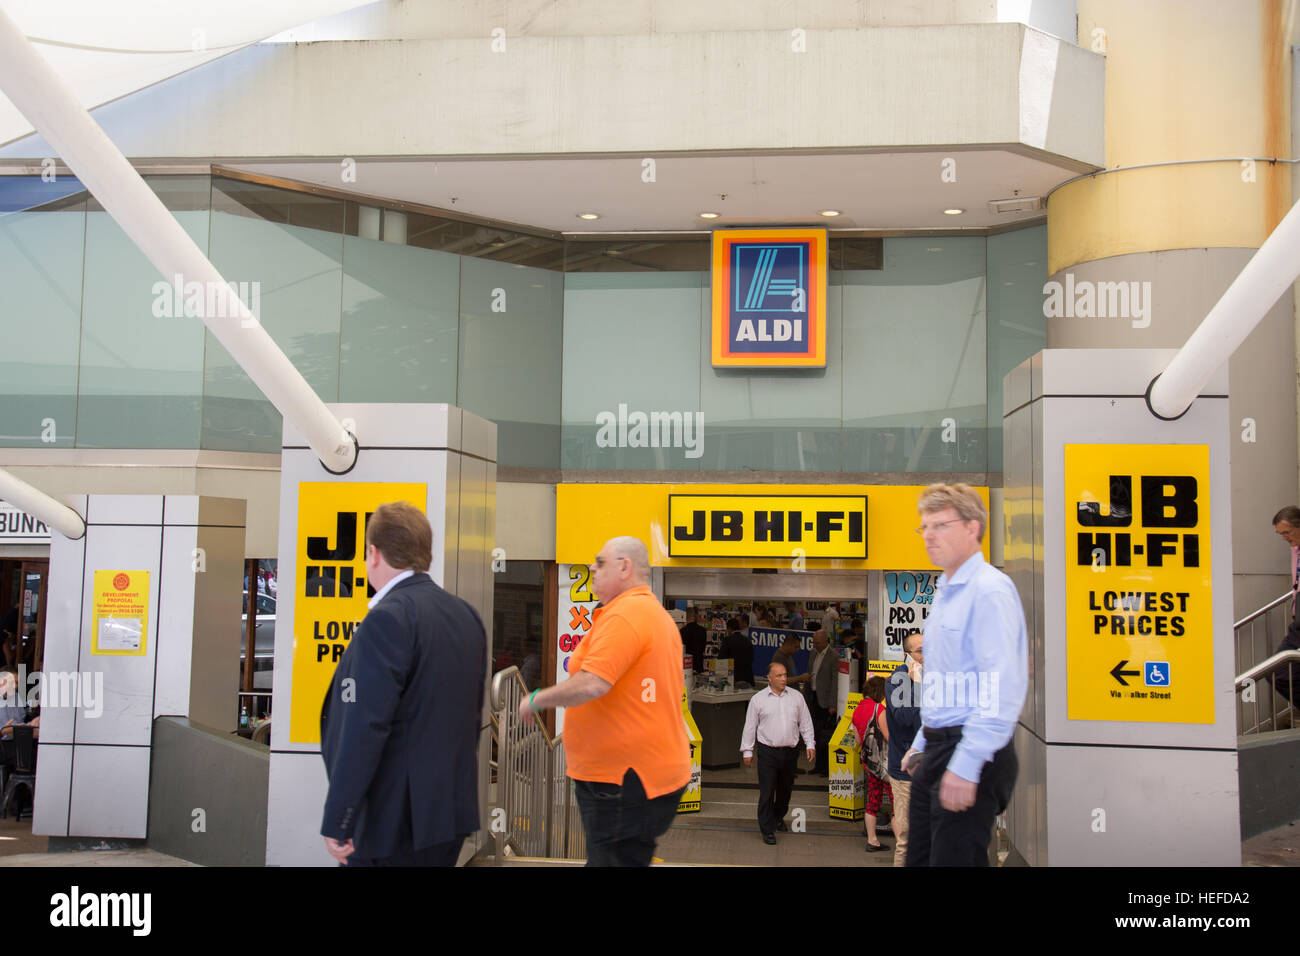 JB HI-FI hifi electrical electronics store in North Sydney, JB Hifi also own the Good Guys retail chain,Australia - Stock Image